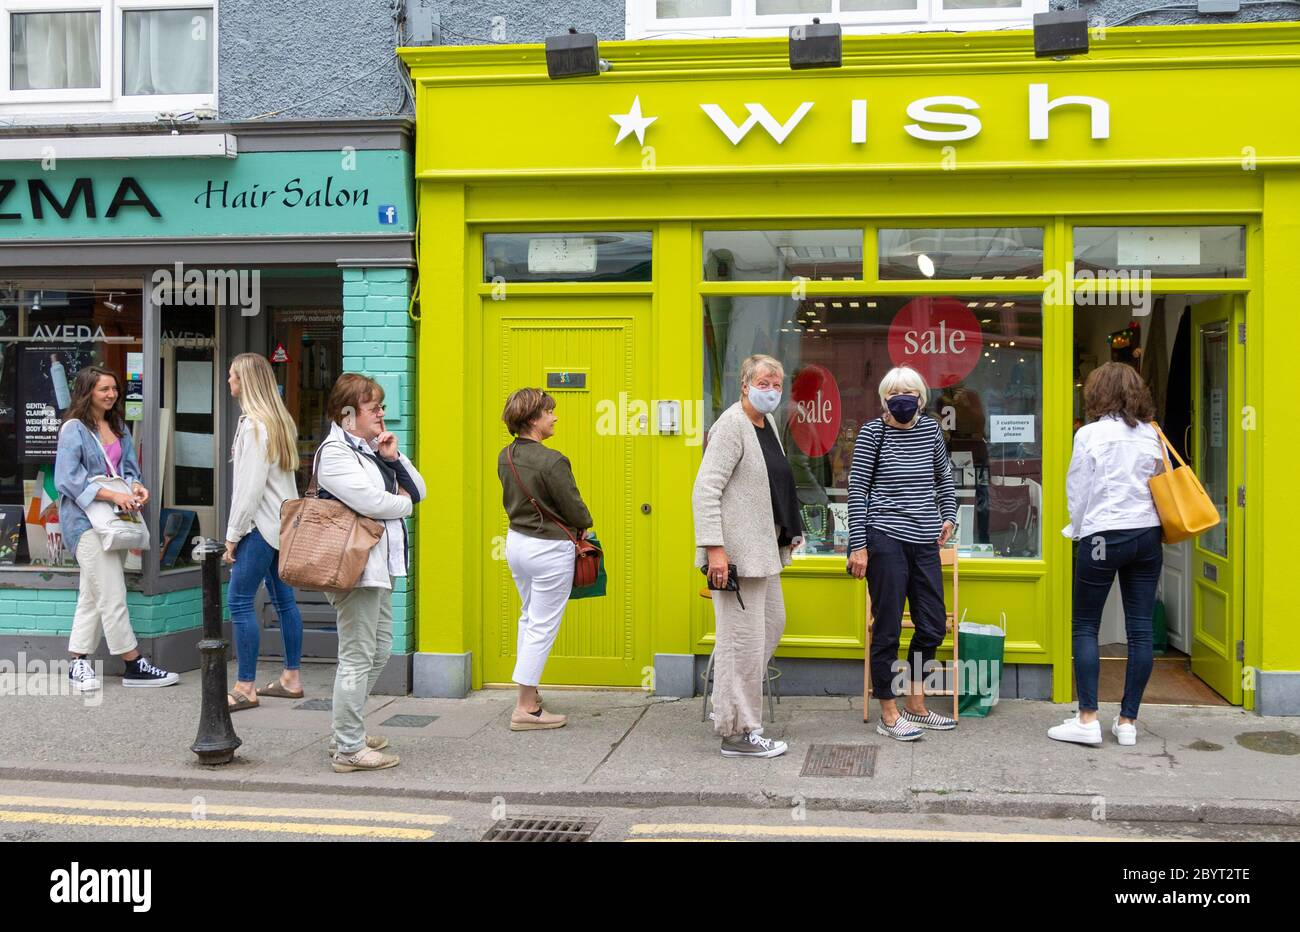 female-shoppers-wearing-face-masks-in-a-queue-skibbereen-ireland-2BYT2TE.jpg